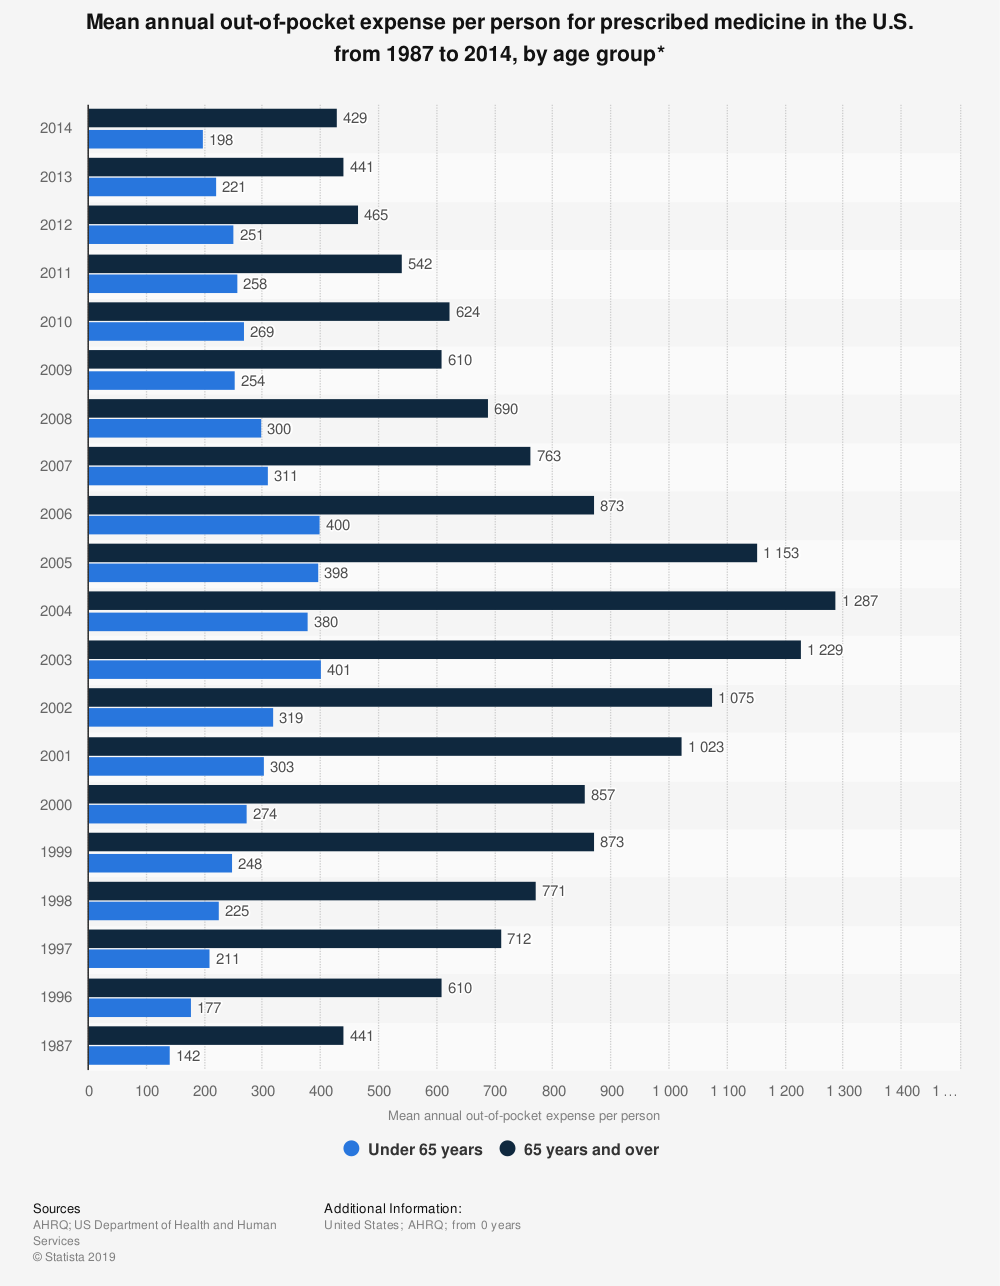 Statistic: Mean annual out-of-pocket expense per person for prescribed medicine in the U.S. from 1987 to 2014, by age group* | Statista